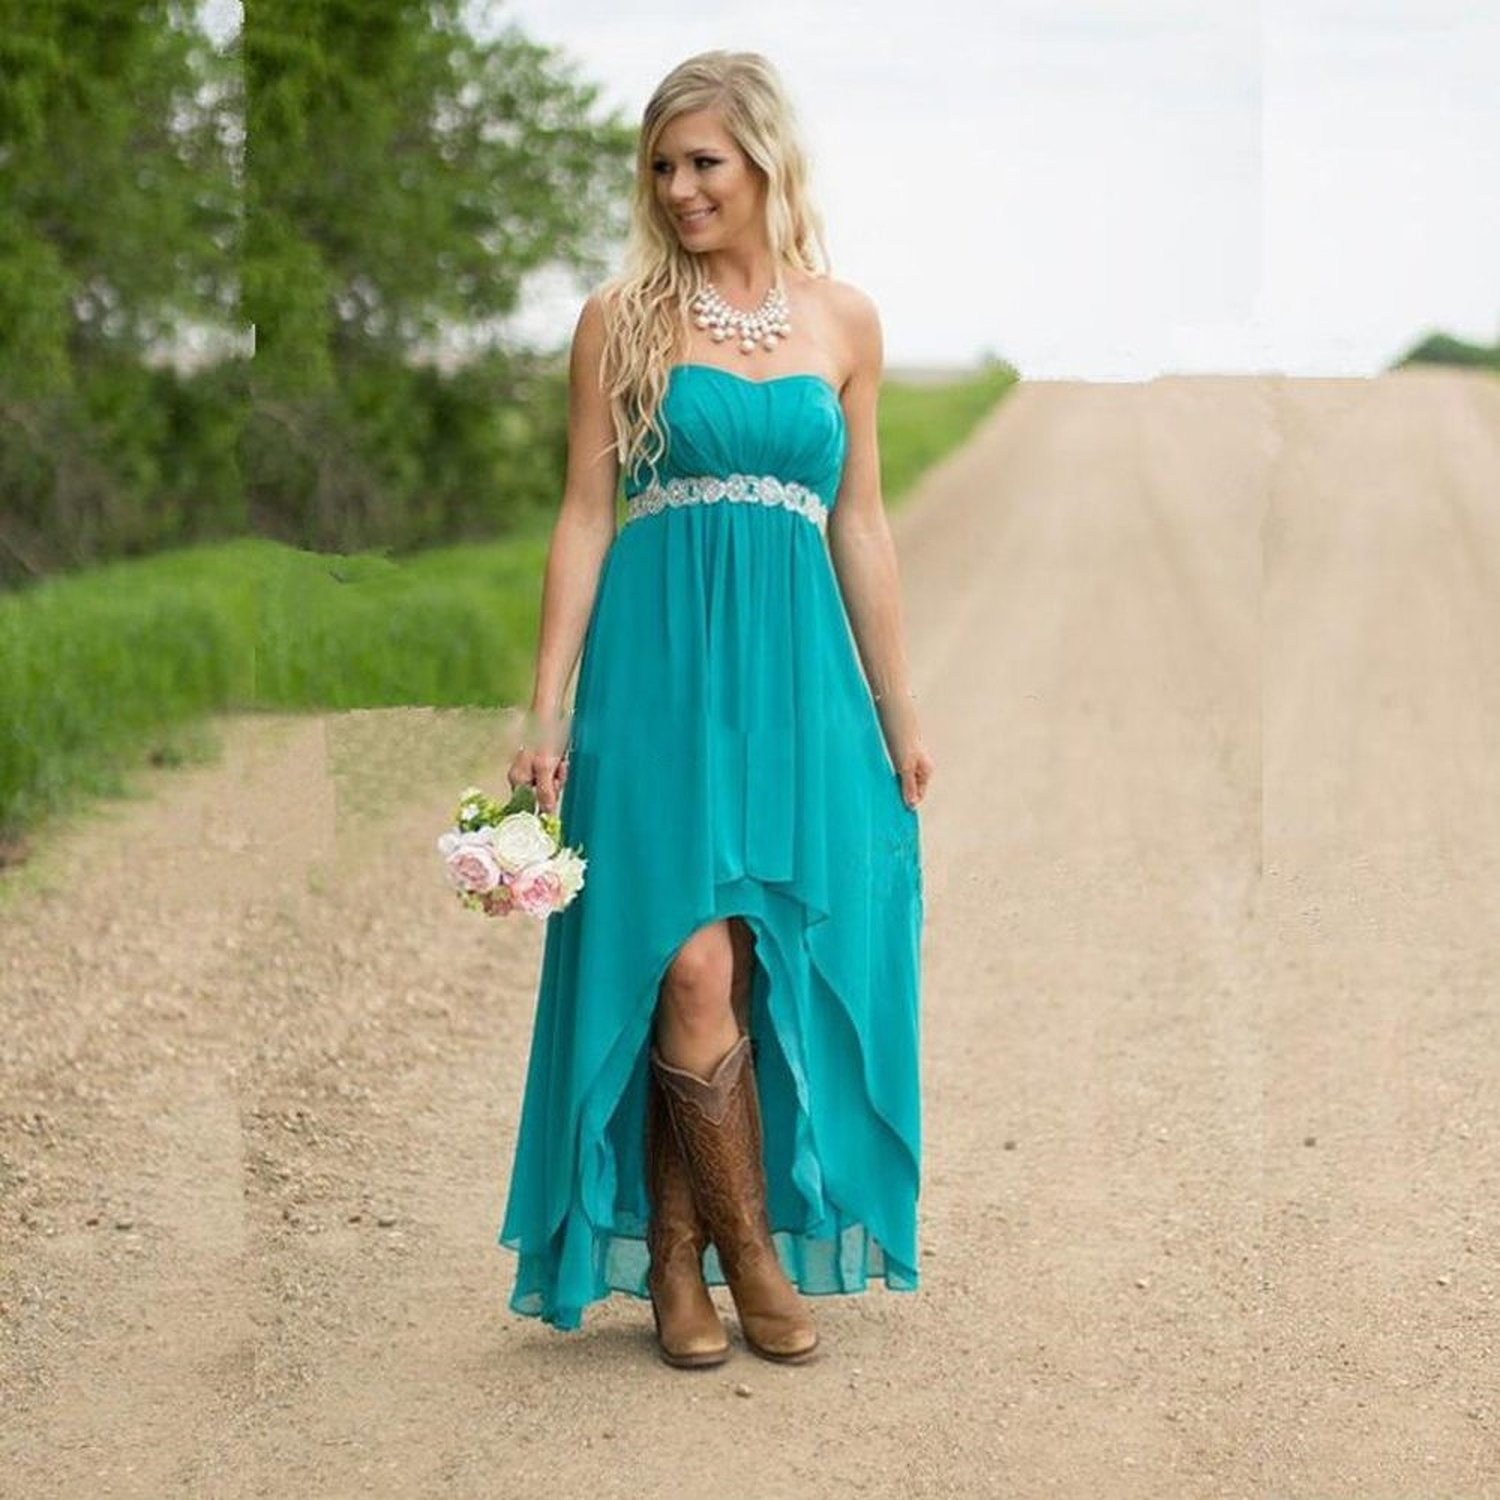 cc7f9be8bf7 Turquoise Bridesmaid Dress